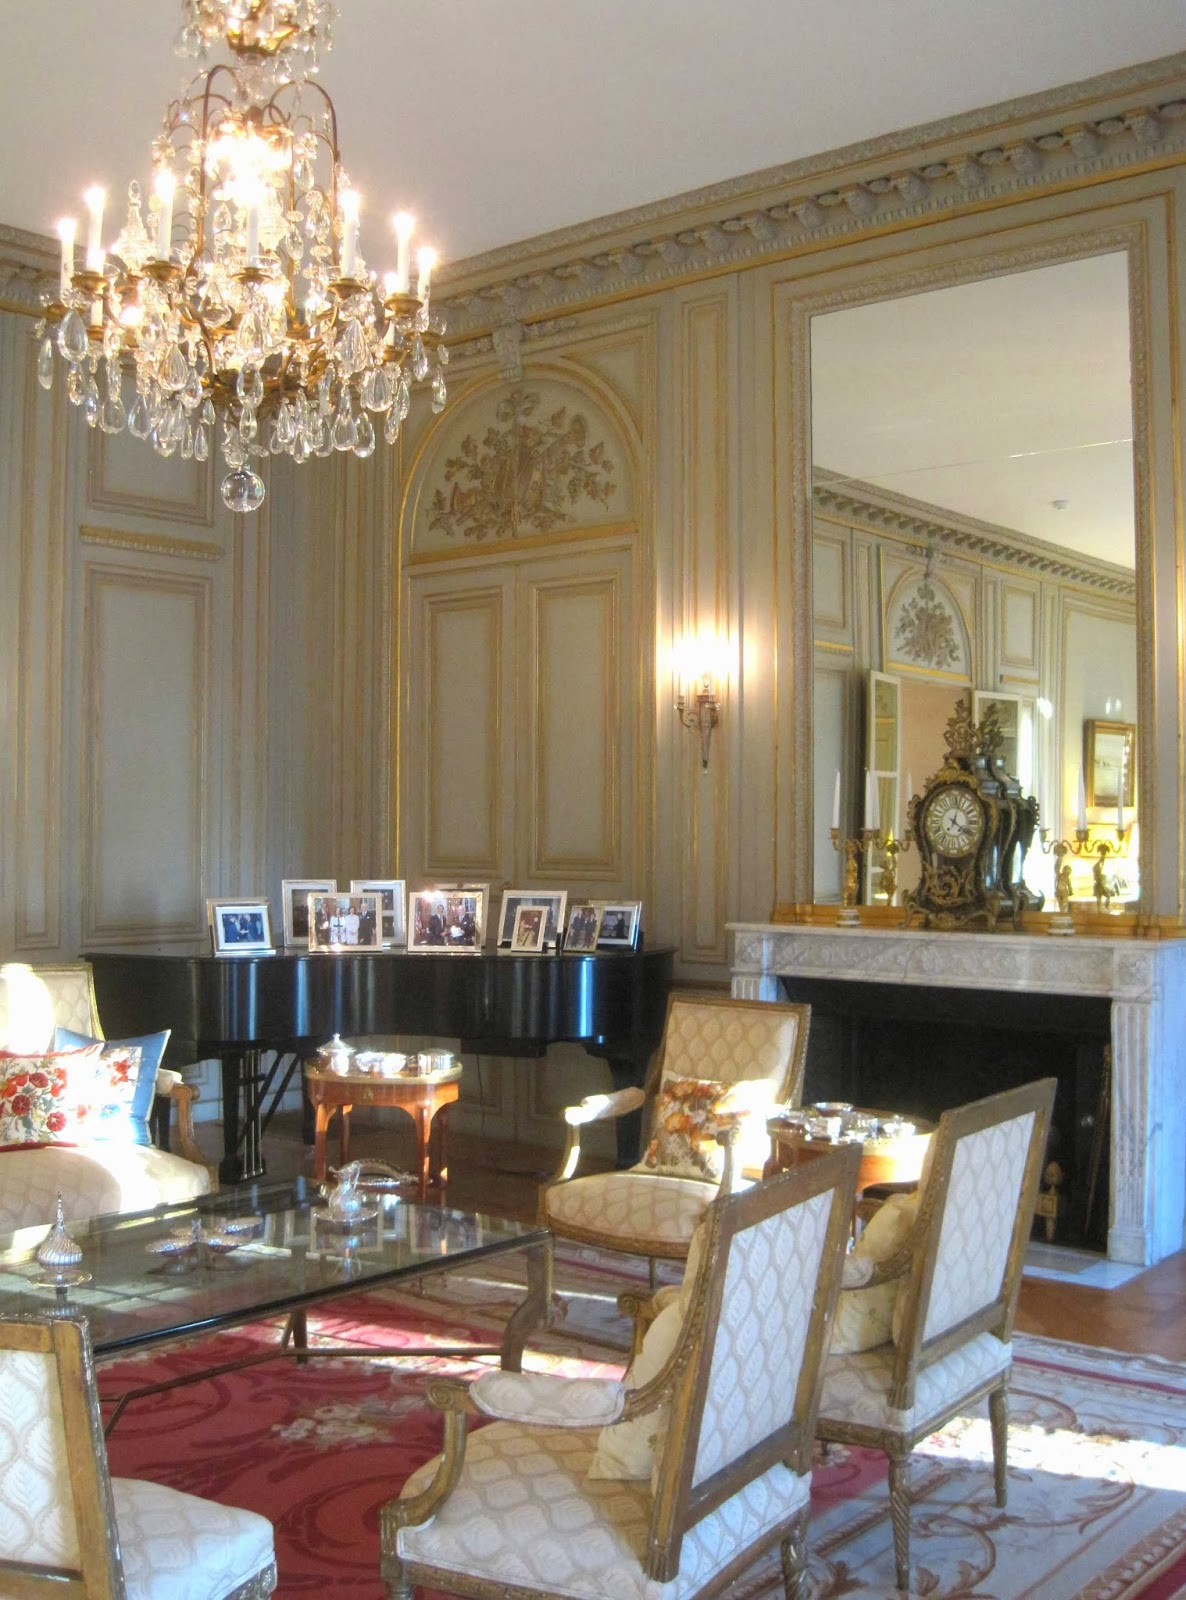 ambassador dining room. While a formal room we were assured the Ambassador and his family love to  use this space entertain here frequently evidenced by personal Belgian ambassador s residence interiors 2 Salon Dining Rooms